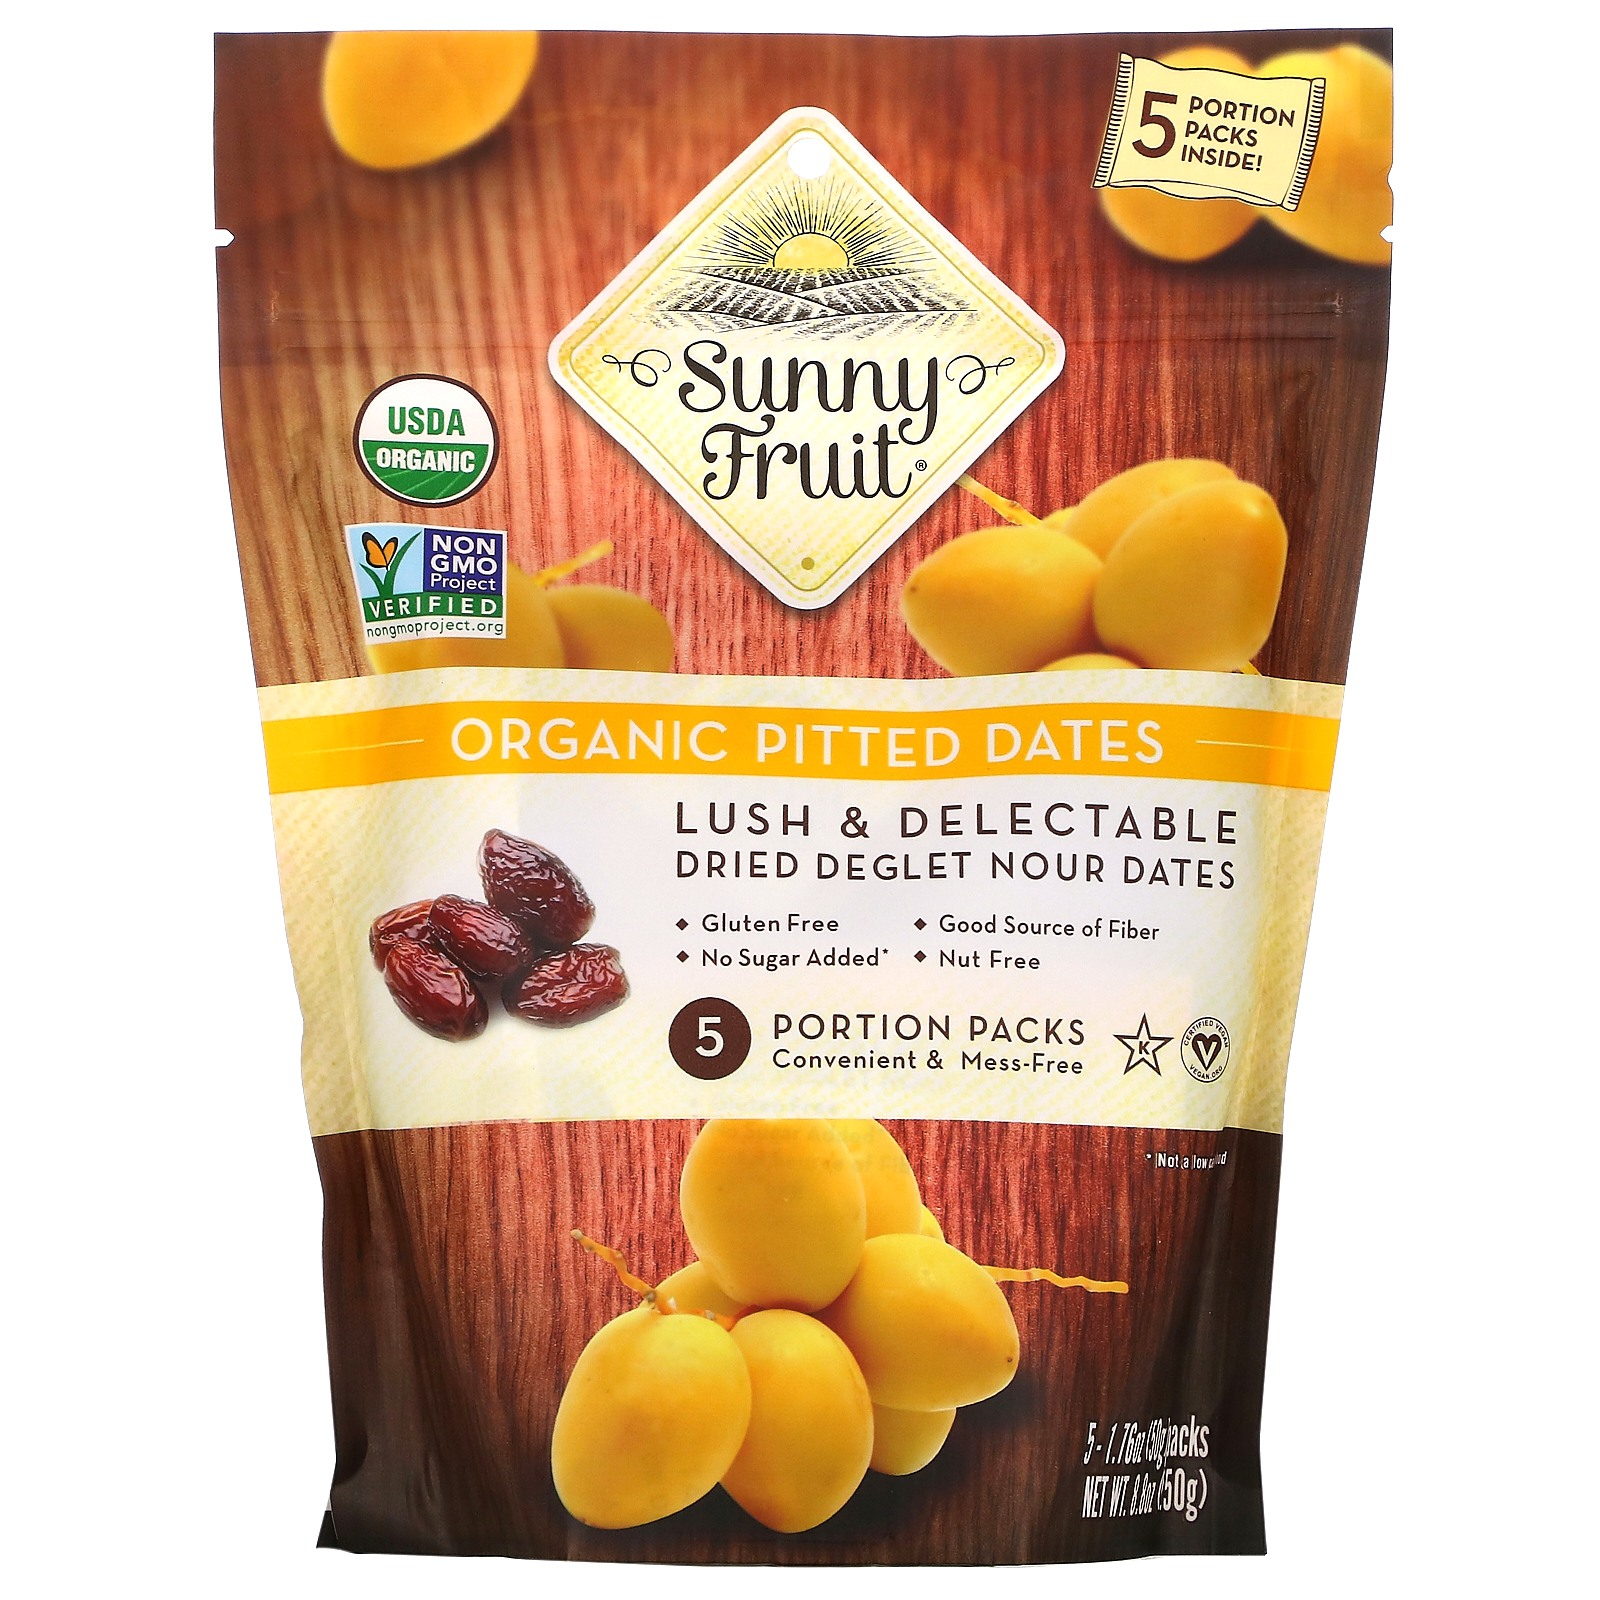 Sunny Fruit, Organic Pitted Dates, 5 Portion Packs, 1.76 oz ( 50 g) Each